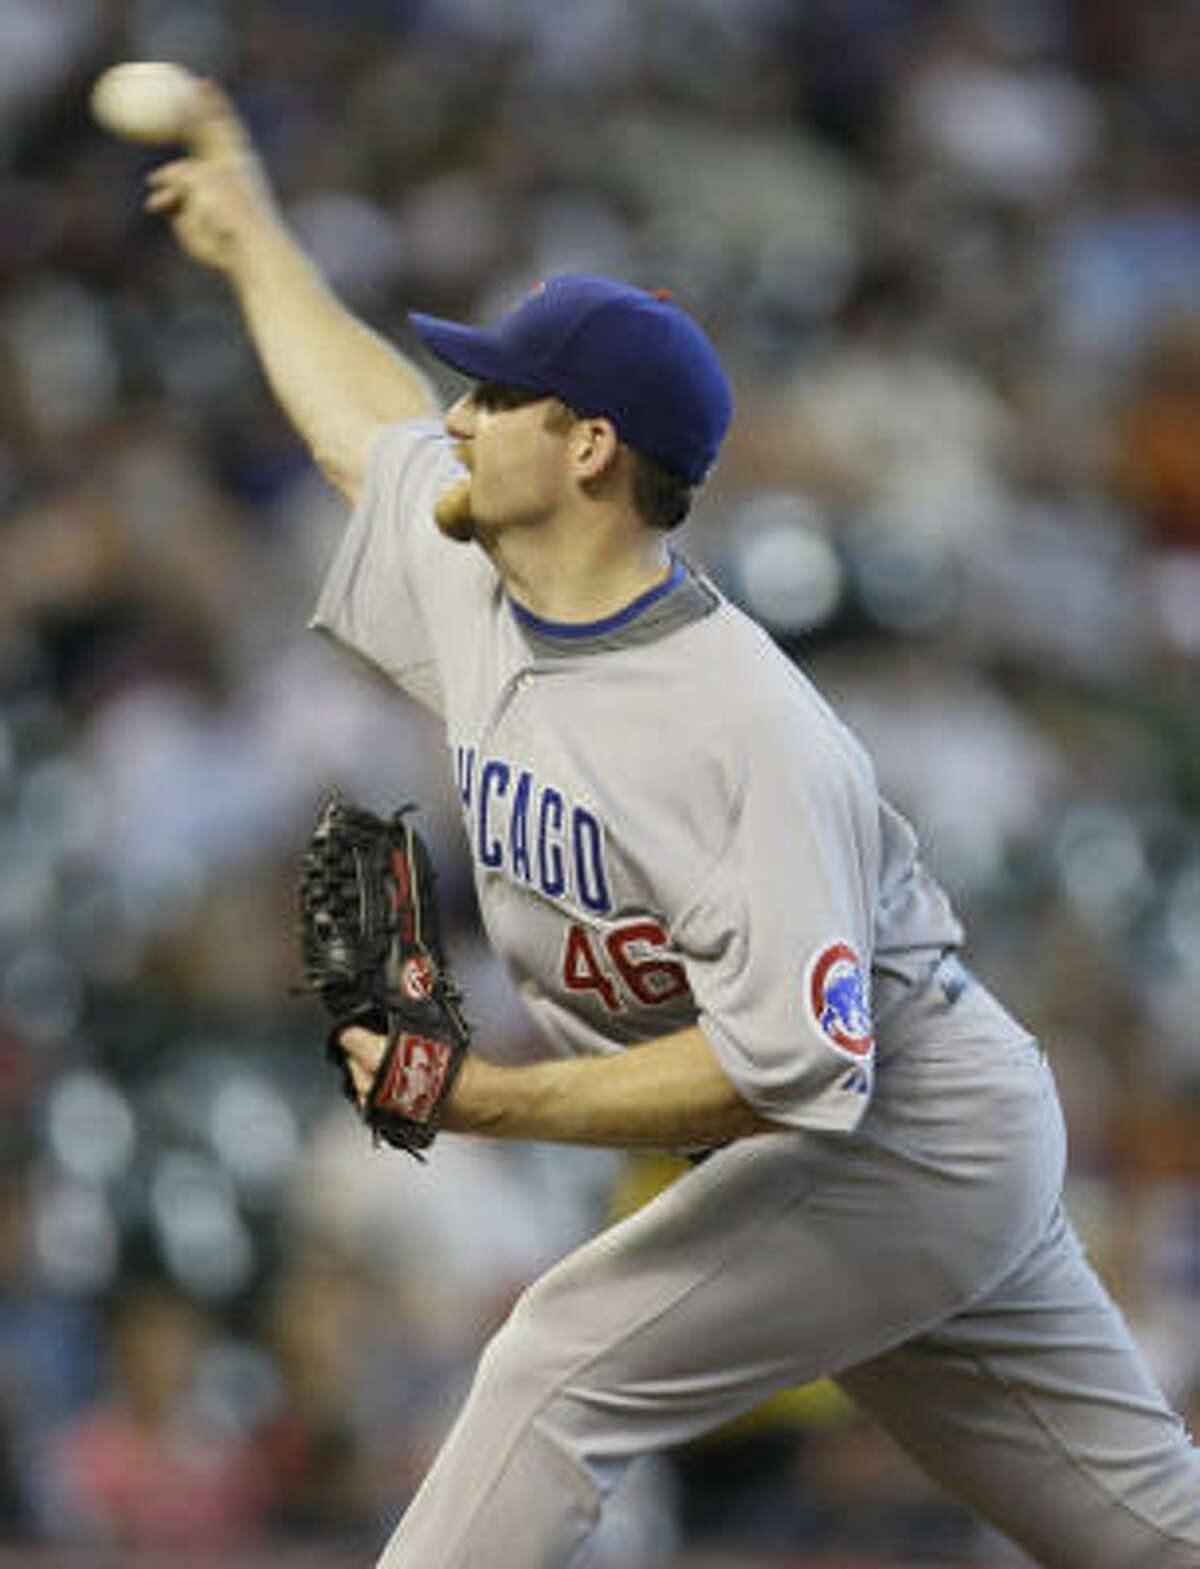 Chicago Cubs righthander Ryan Dempster allowed a run in the first inning. Dempster, who allowed one run over seven innings, received a no-decision after the Cubs rallied to tie the game at 1 in the ninth.